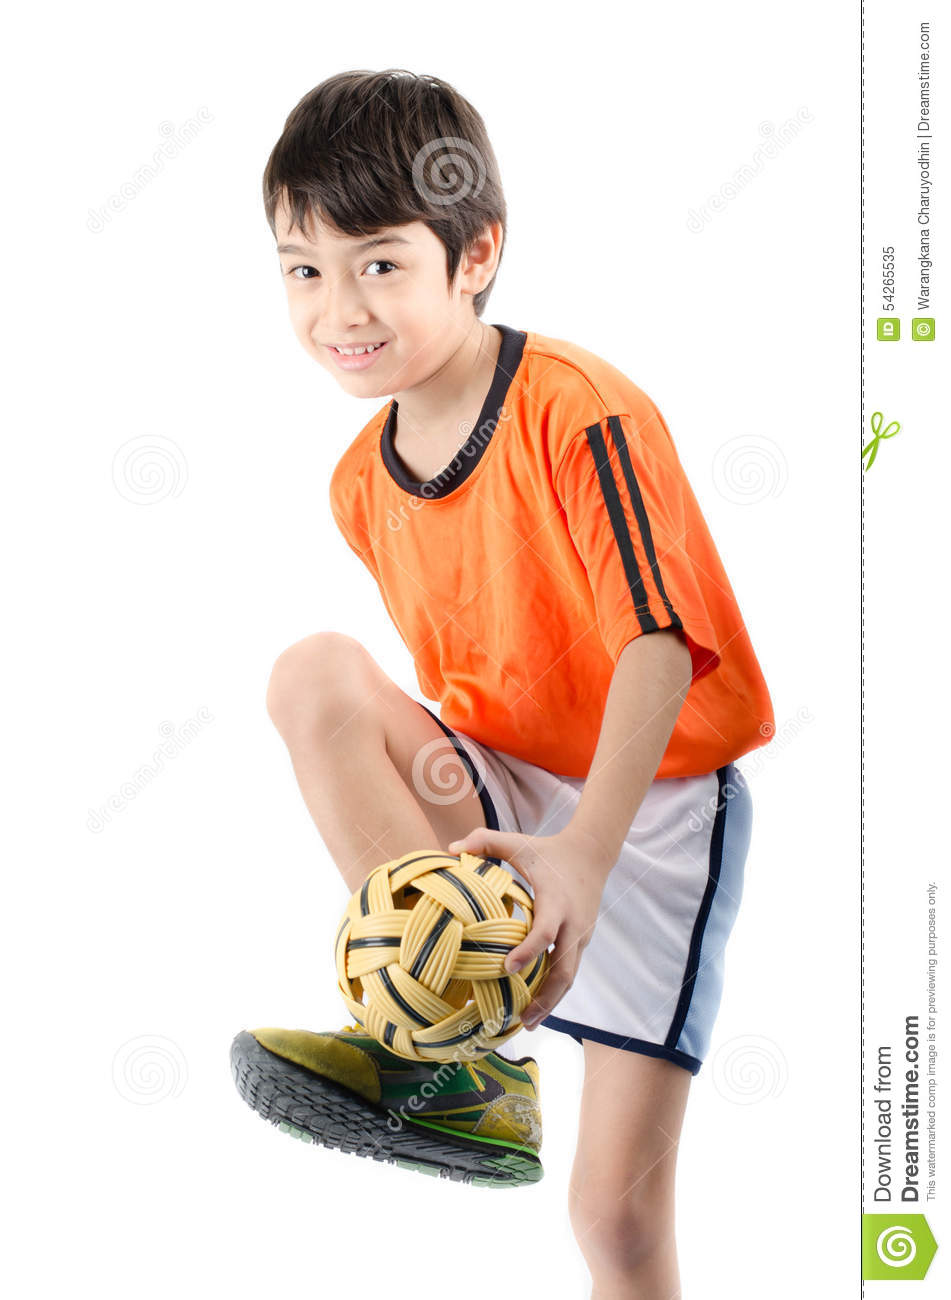 How to Make a Sepak Takraw Ball Ornament from a Plastic Bottle How to Make a Sepak Takraw Ball Ornament from a Plastic Bottle new pics